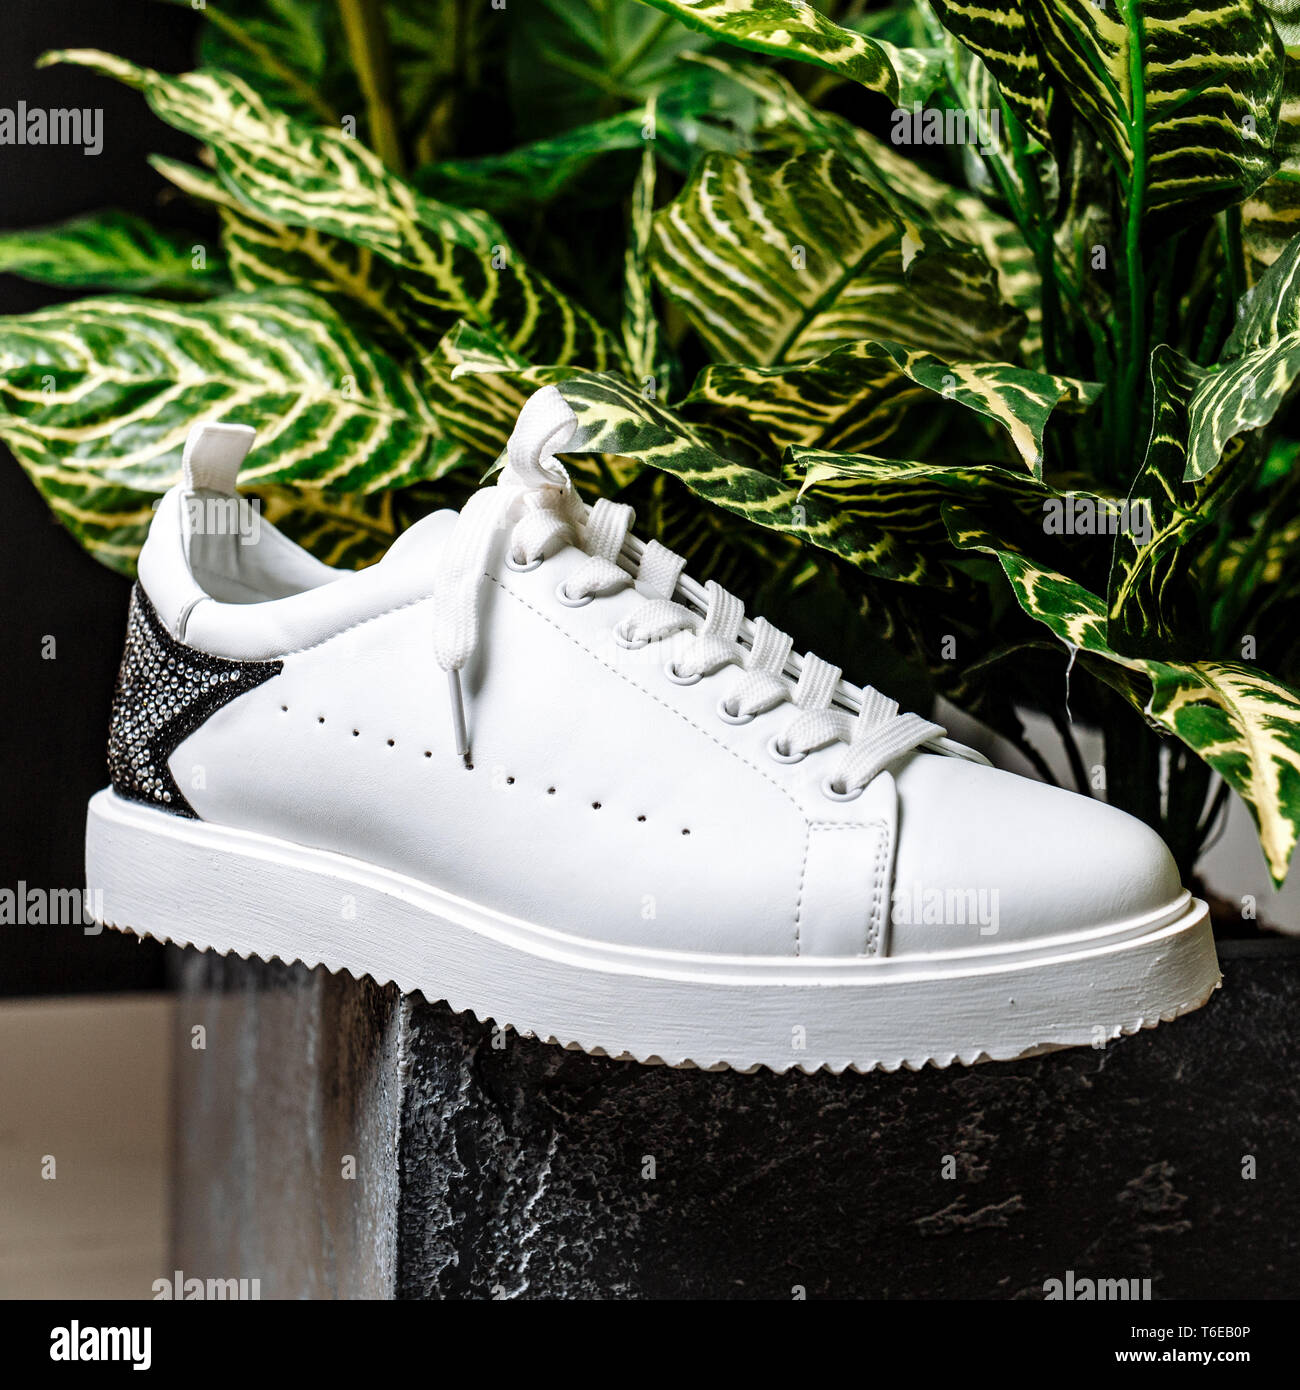 buy popular 6bc56 9cf3e stylish white sneaker with a star ornament made of rhinestones on the  backdrop against the motley